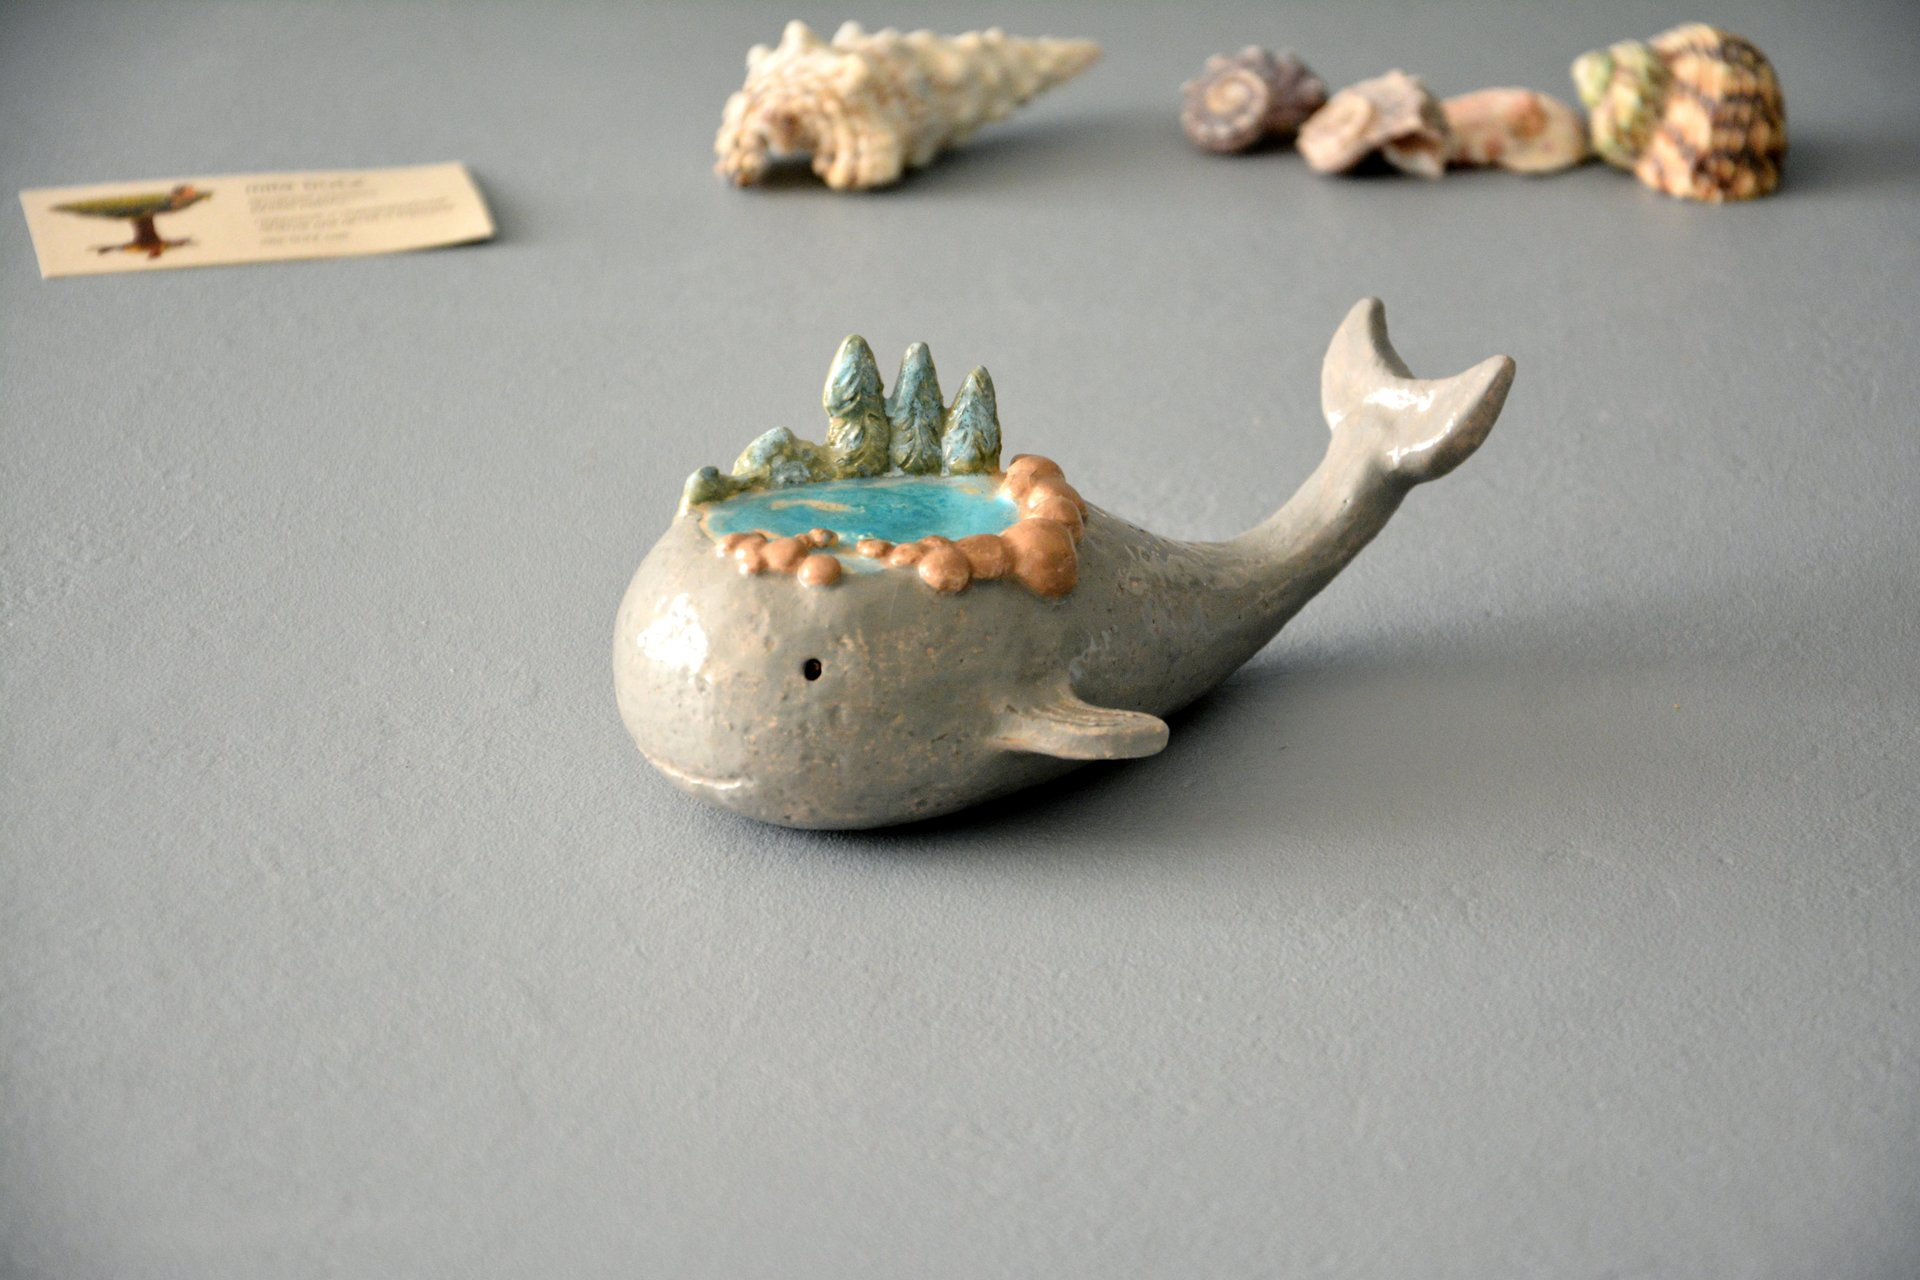 Little whale - Ceramic fishes, height - 5 cm, photo 2 of 5.